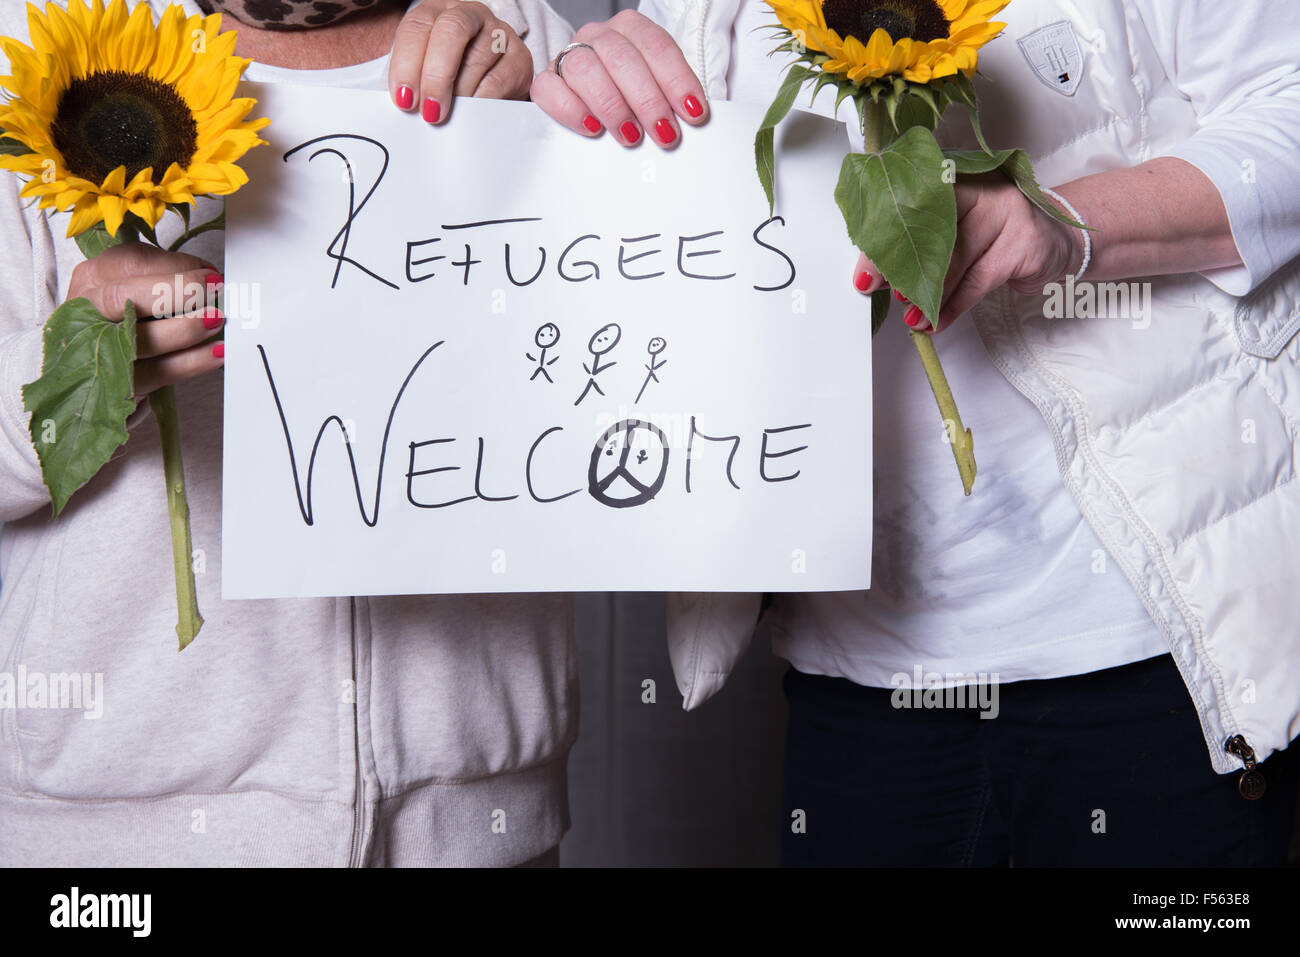 female helpers welcome refugees - Stock Image